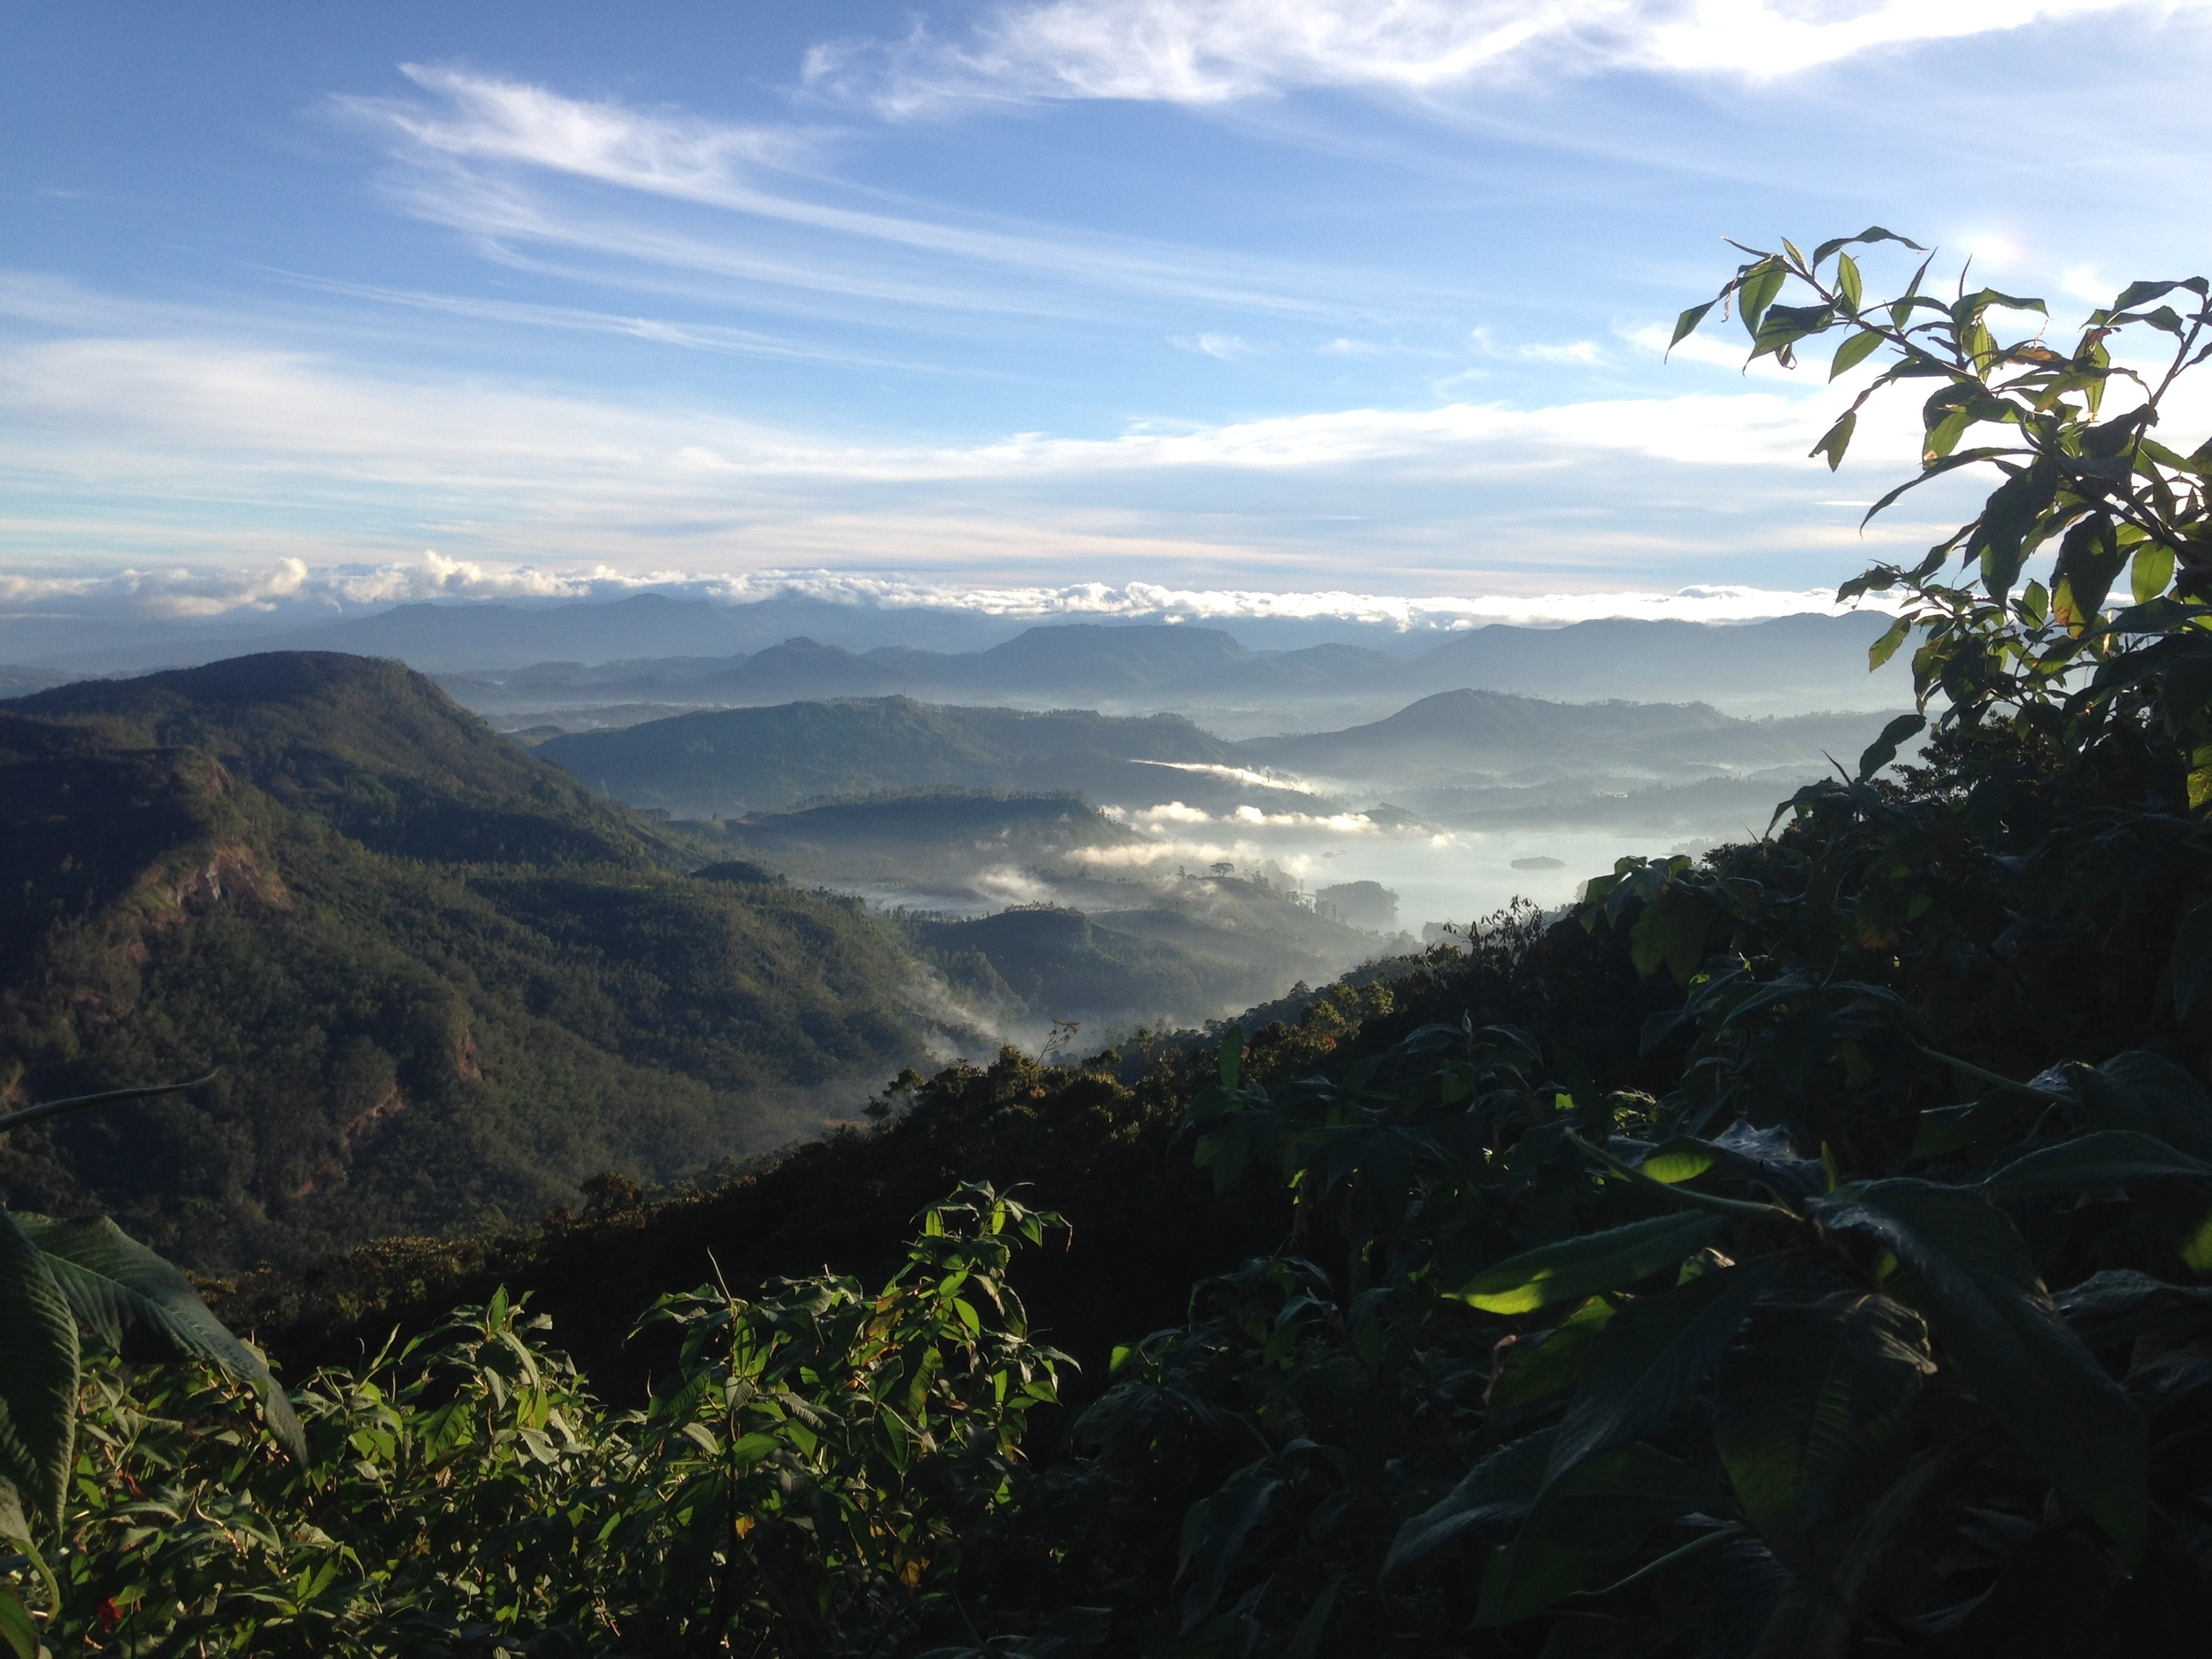 The spectacular view on the way down from Adam's Peak.